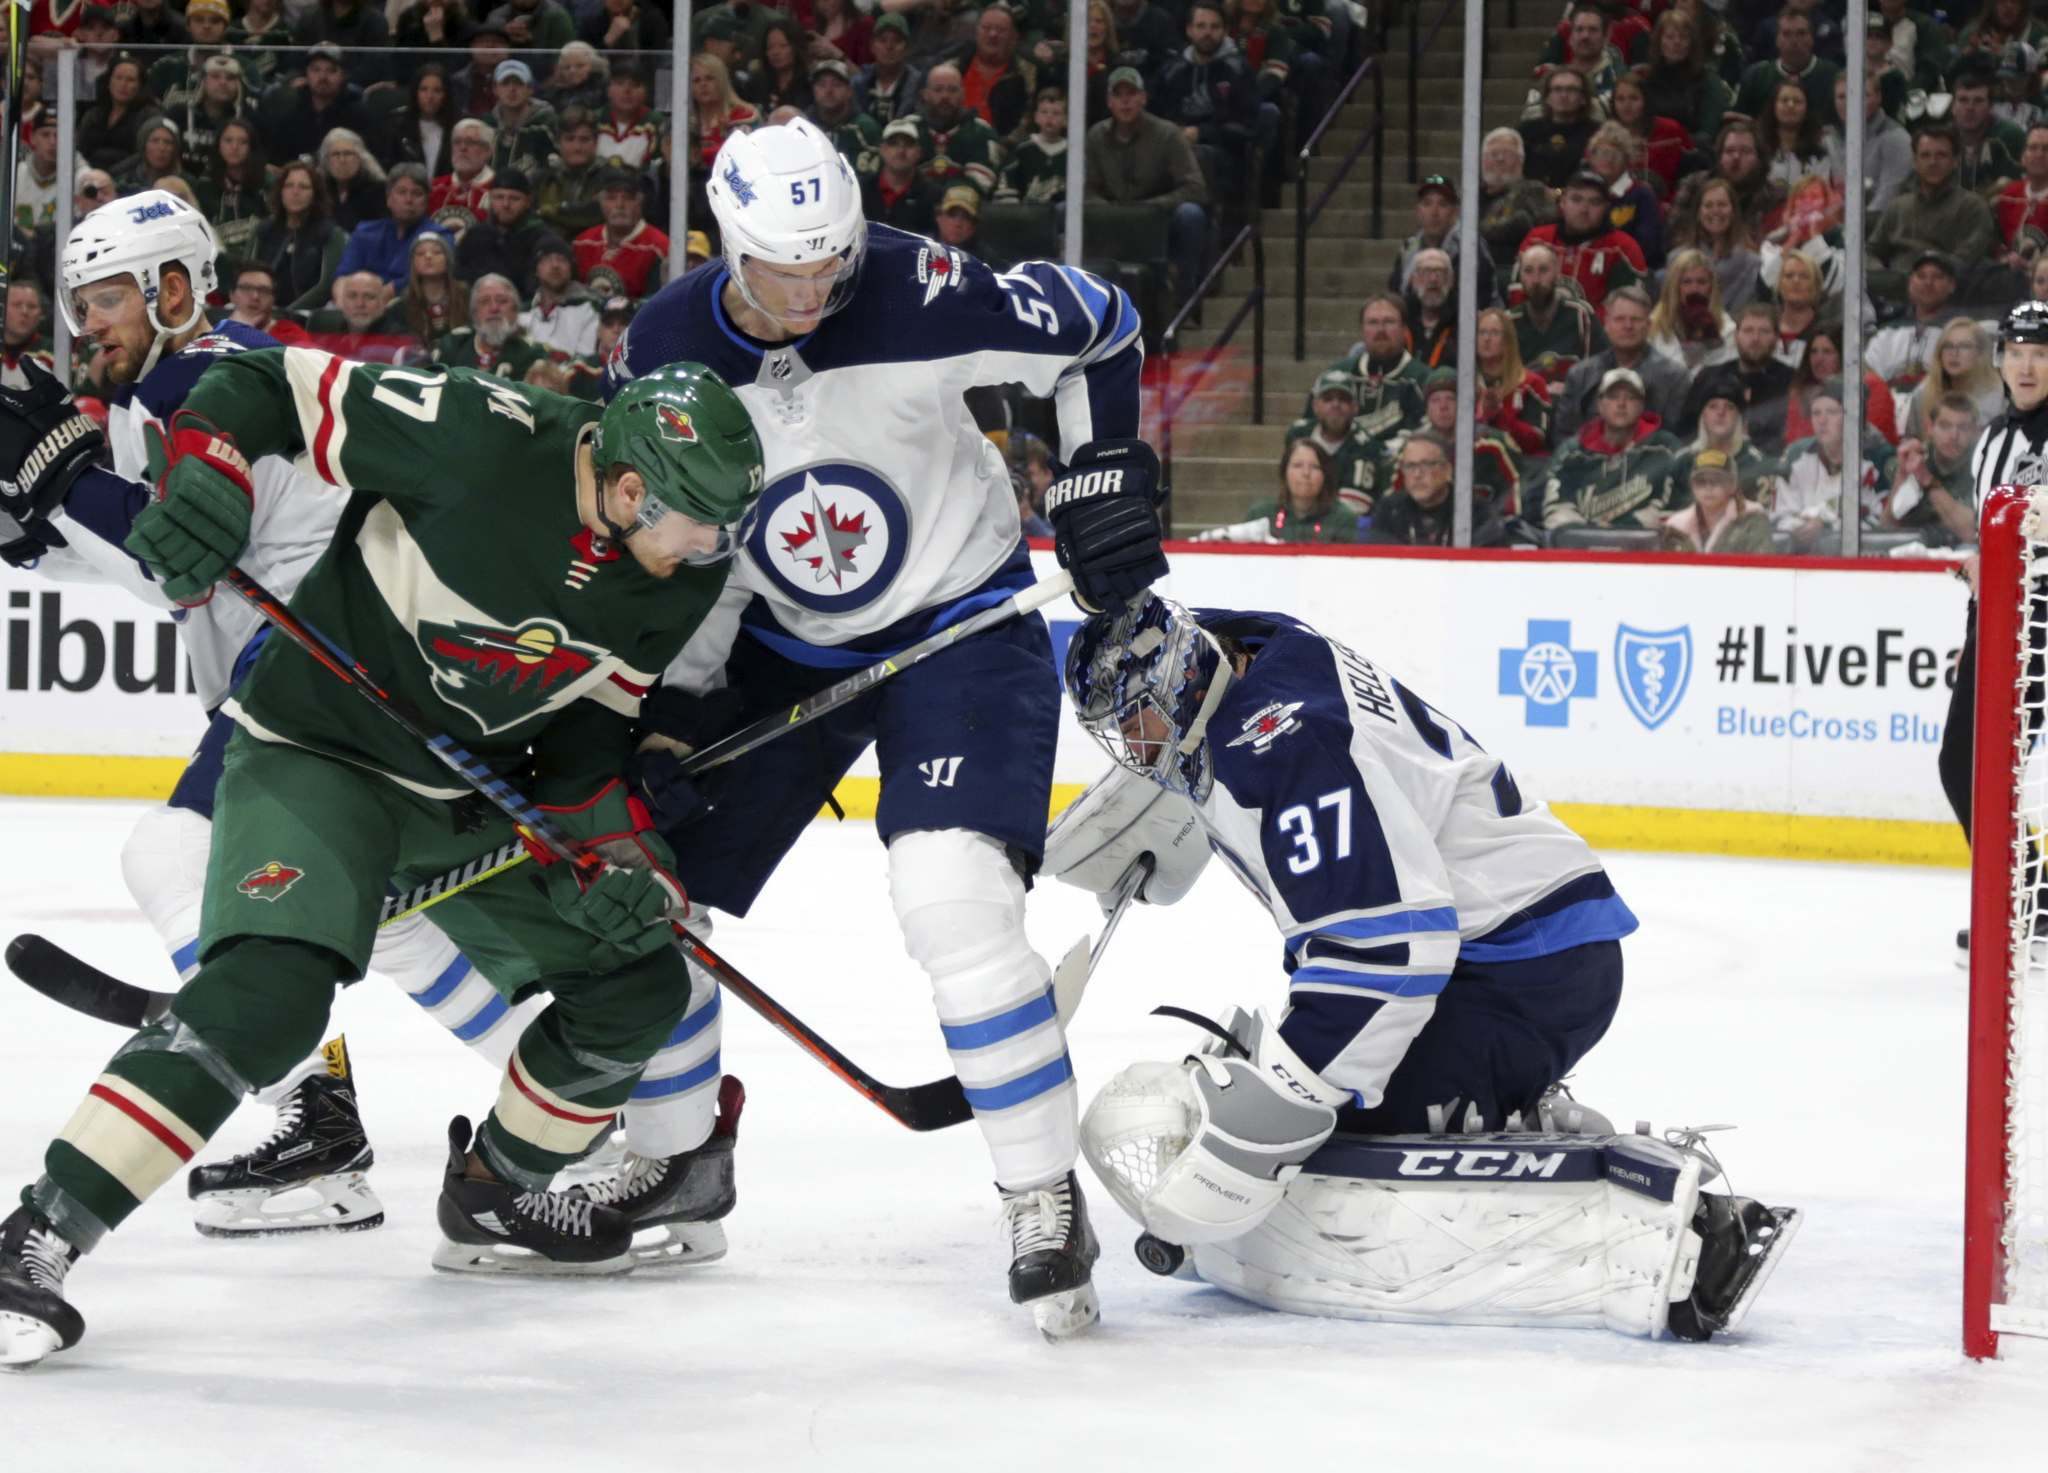 Wild left wing Marcus Foligno left tangles with Winnipeg Jets defenseman Tyler Myers in the first period of their game on Sunday. Myers would later leave the game after getting injured during a collision with Foligno